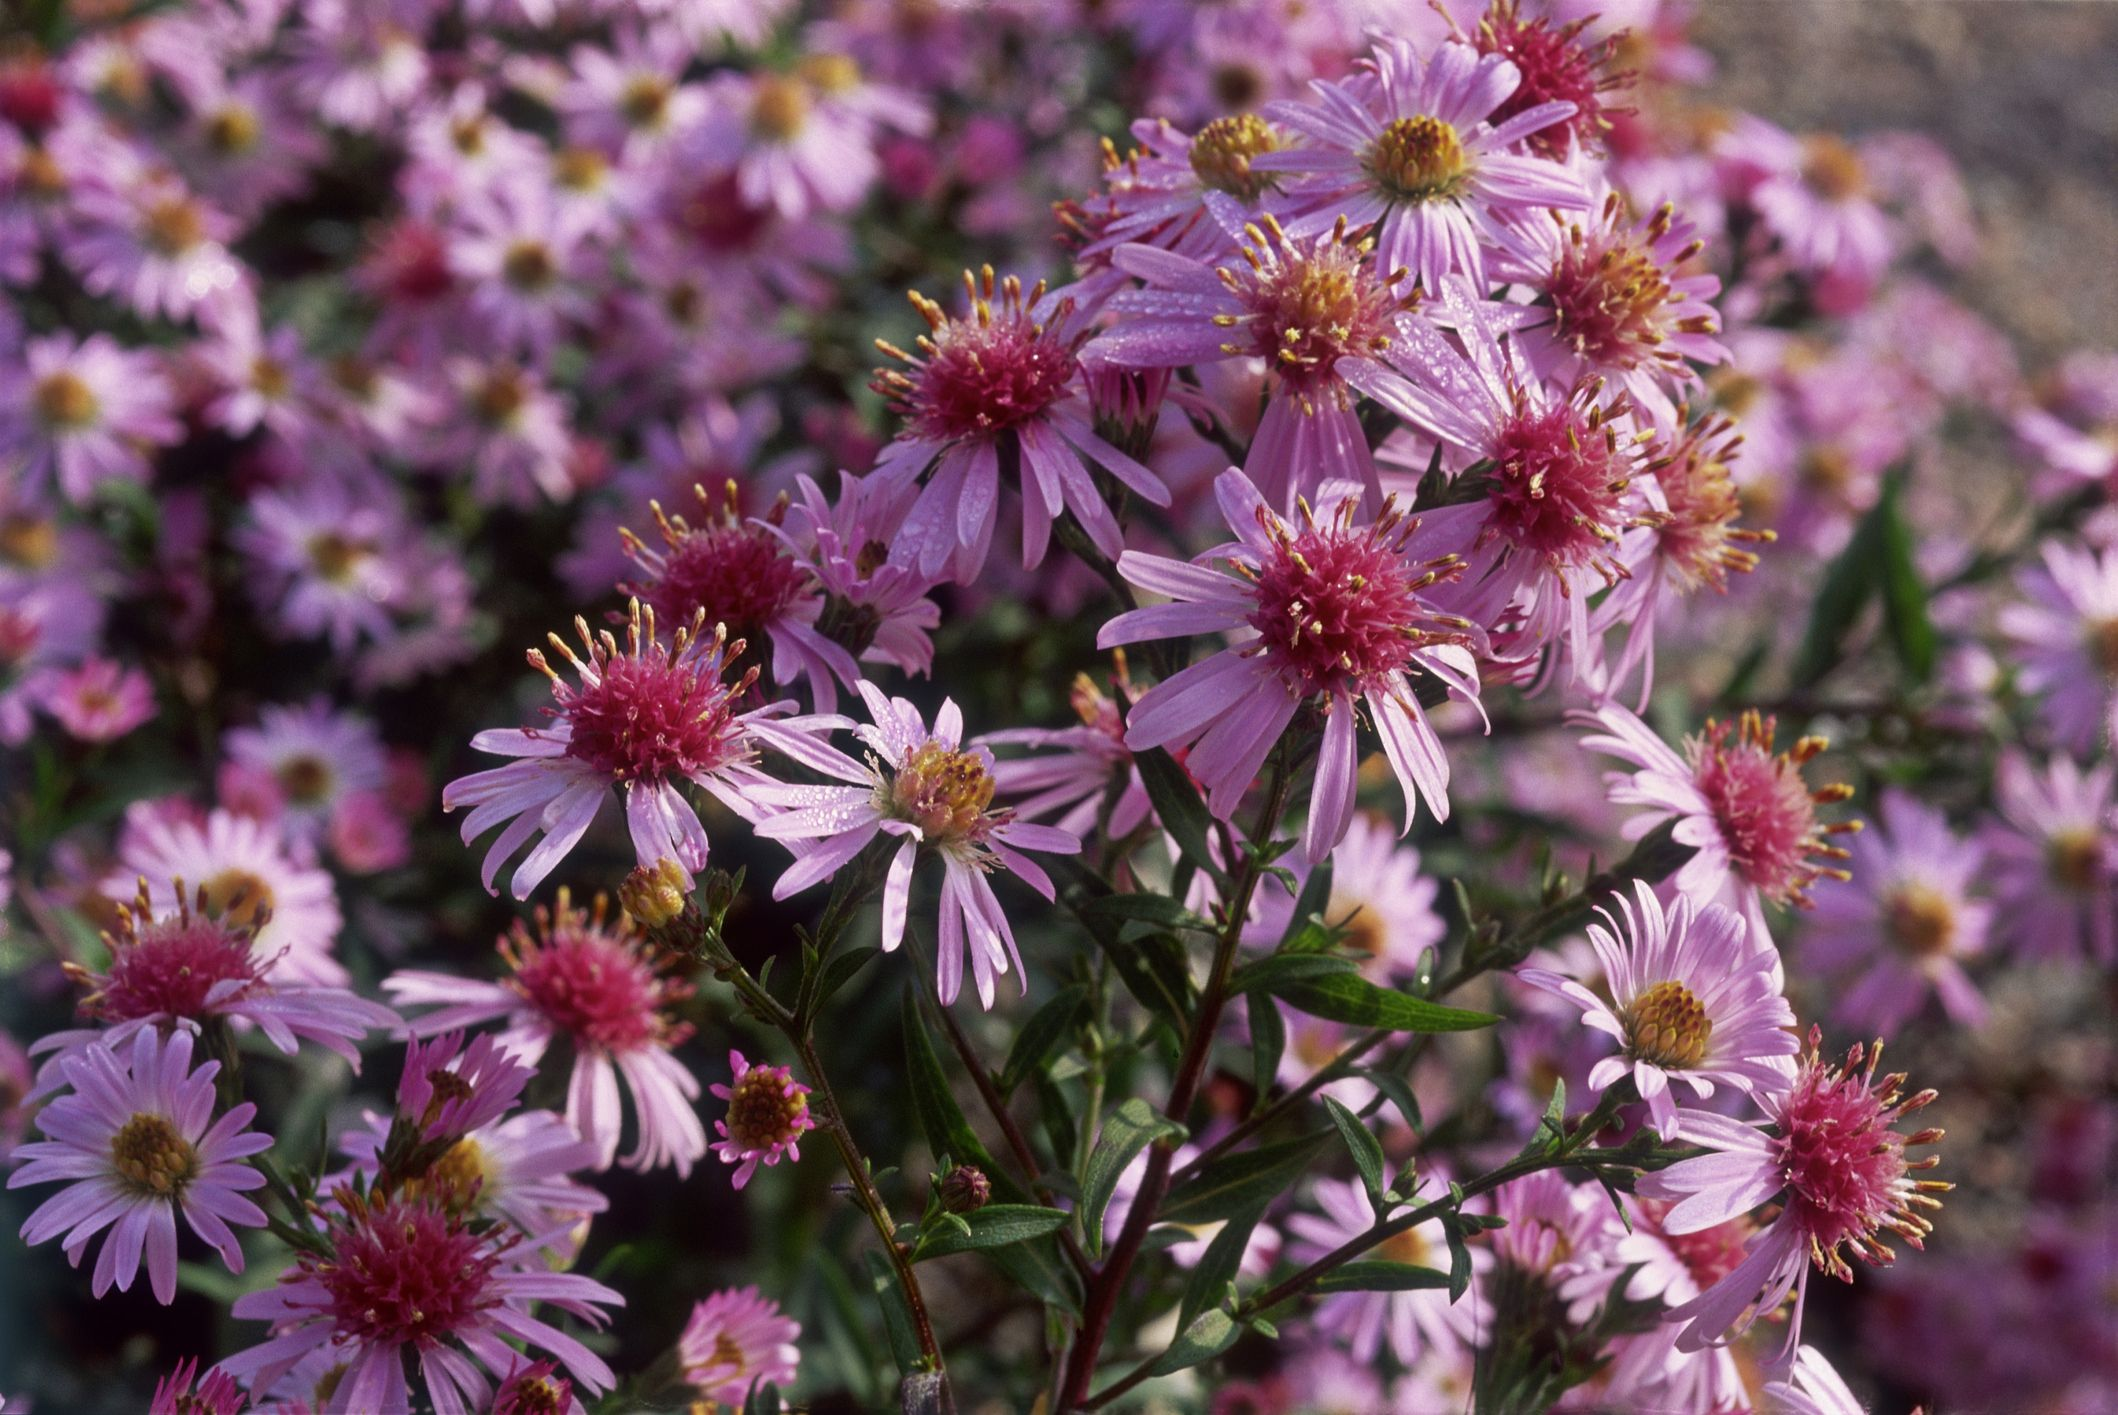 15 of the best plants for a beautiful summer garden border rhs 15 of the best plants for a beautiful summer garden border rhs designers top garden border plants izmirmasajfo